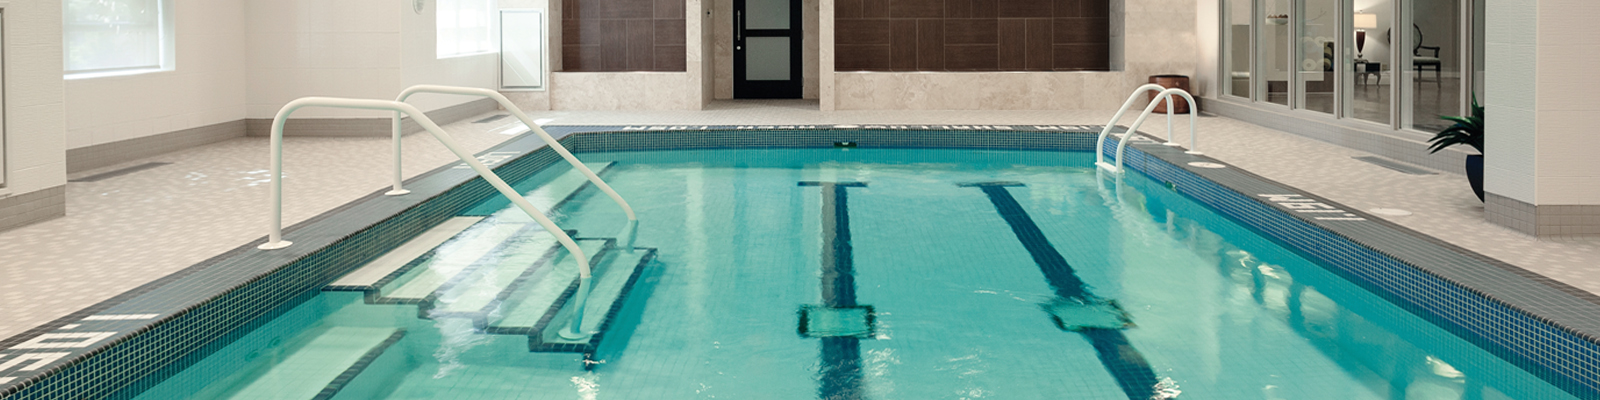 Amica Thornhill senior living residence indoor swimming pool. 375x500 banner.